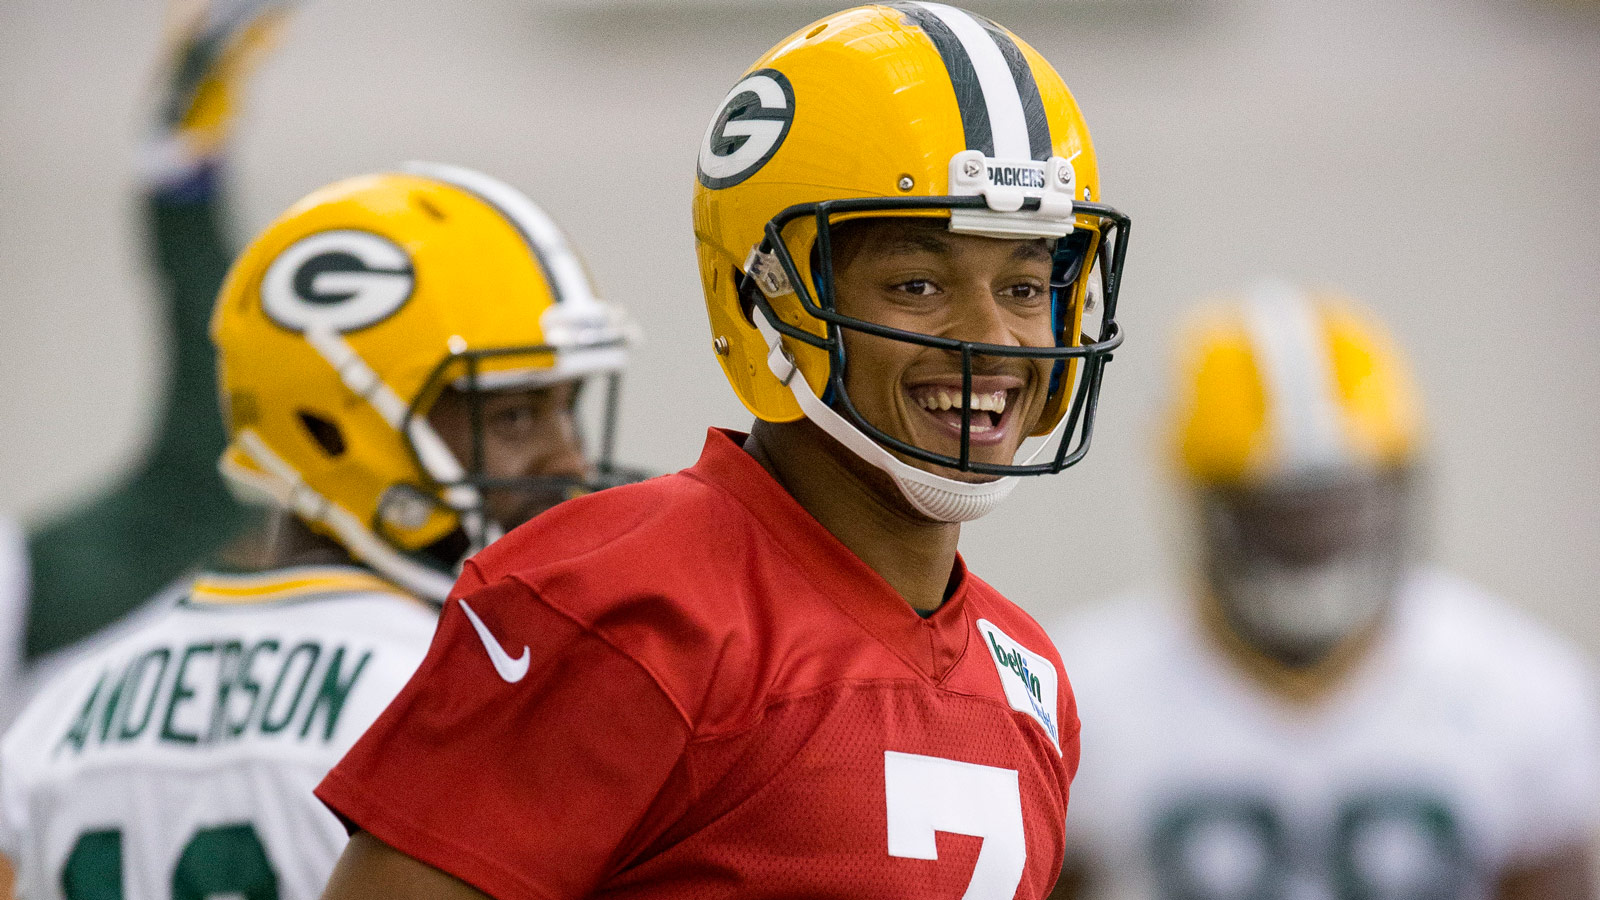 Former Green Bay Packers tight end Jermichael Finley believes the team should sign Brett Favre not Colin Kaepernick More here